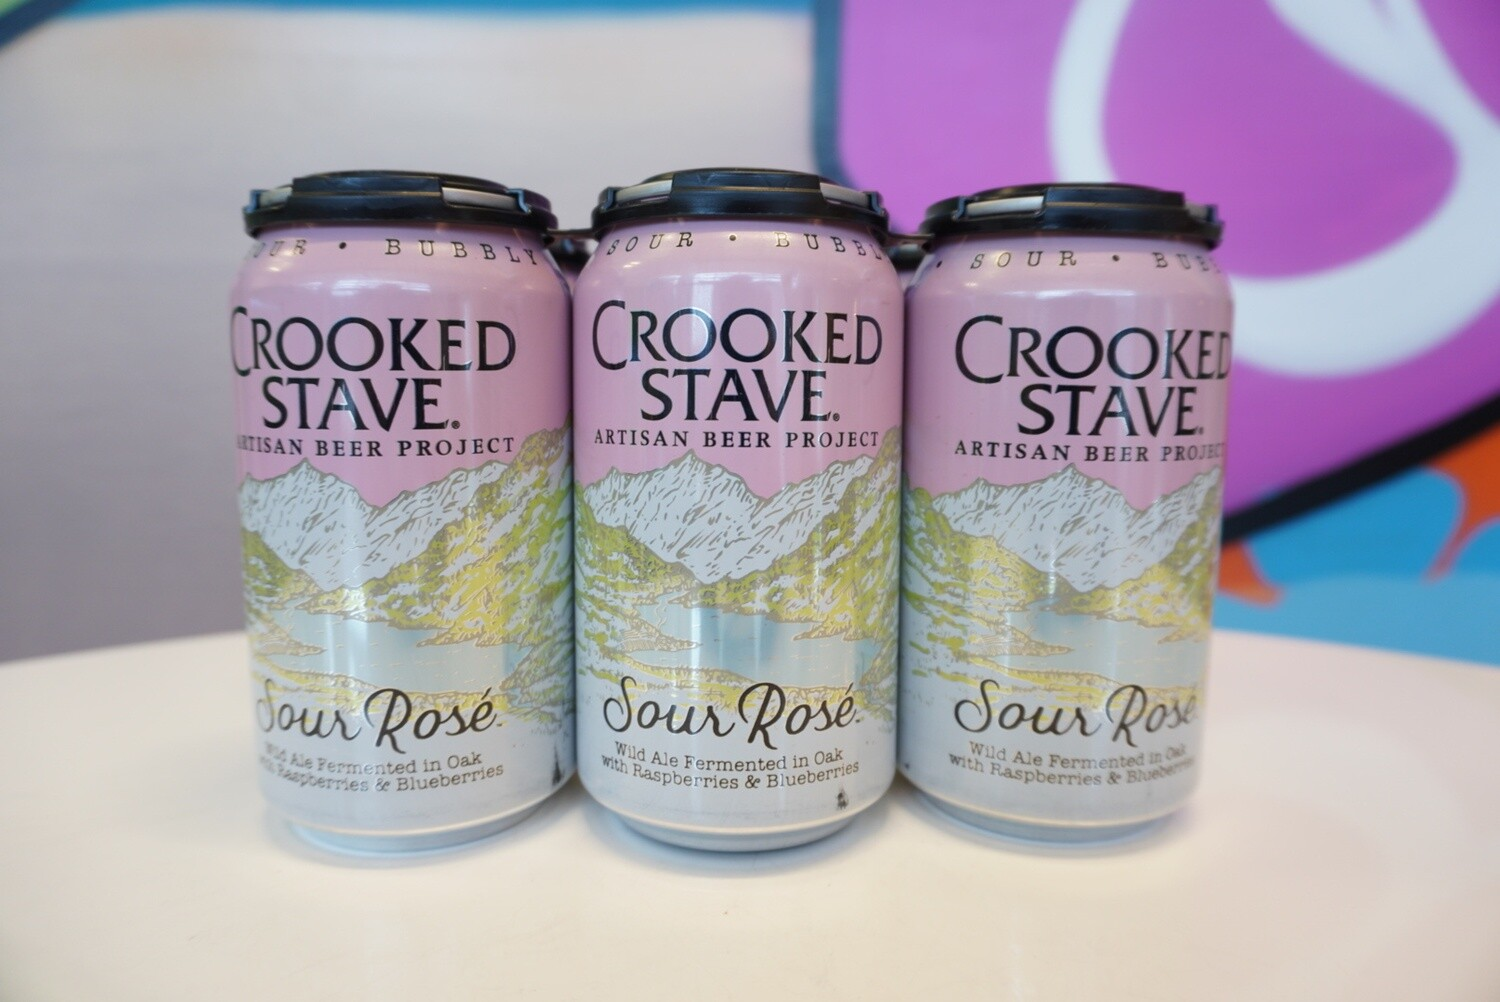 Crooked Stave - Sour Rose - Sour - 4.5% ABV - 6 Pack